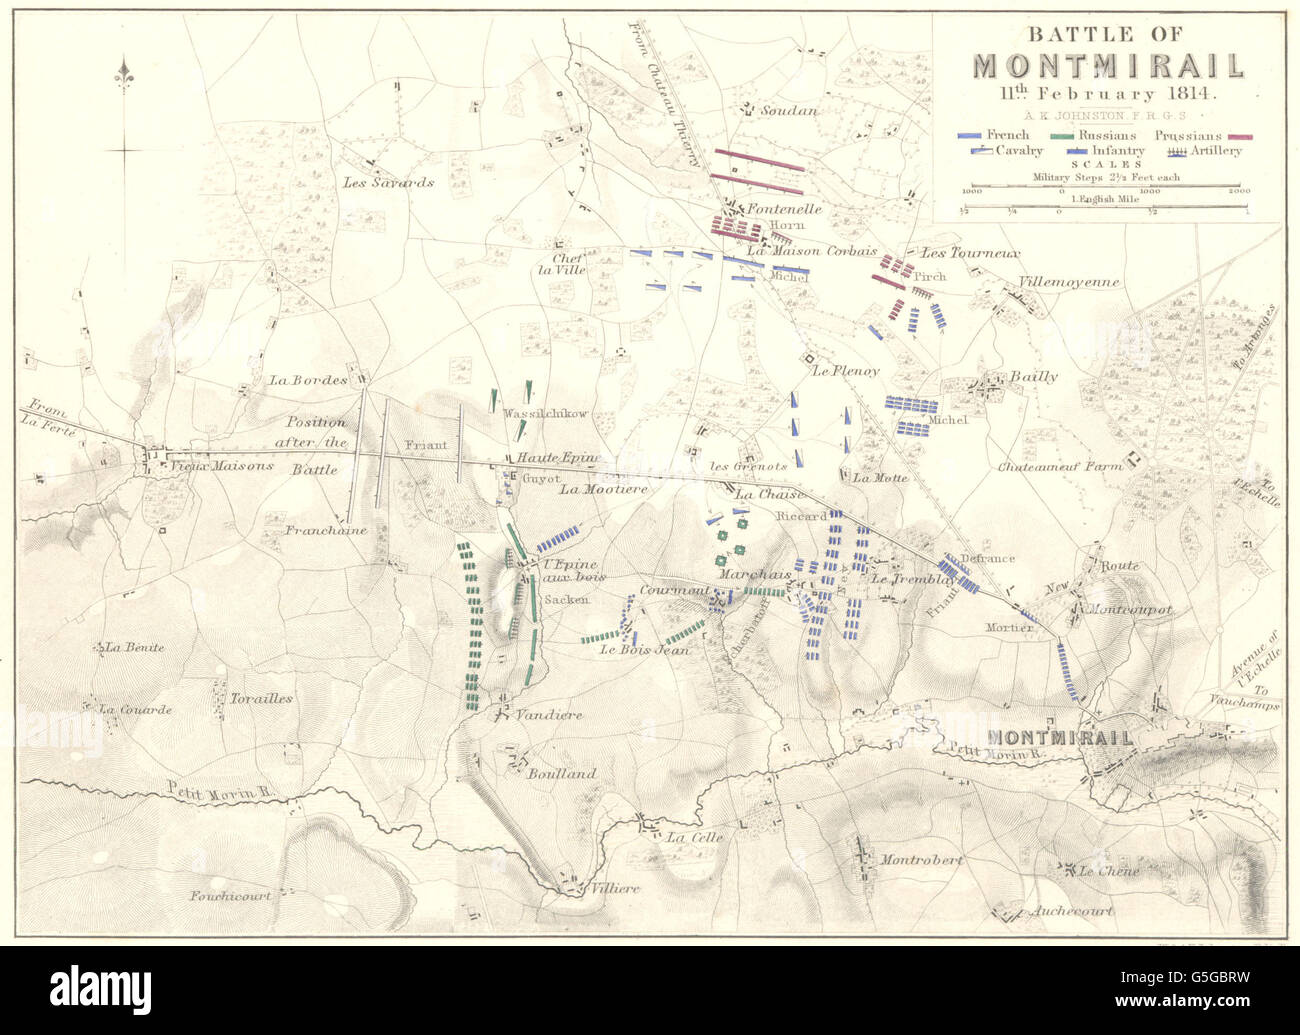 Battle Of Montmirail 11th February 1814 France Napoleonic Wars